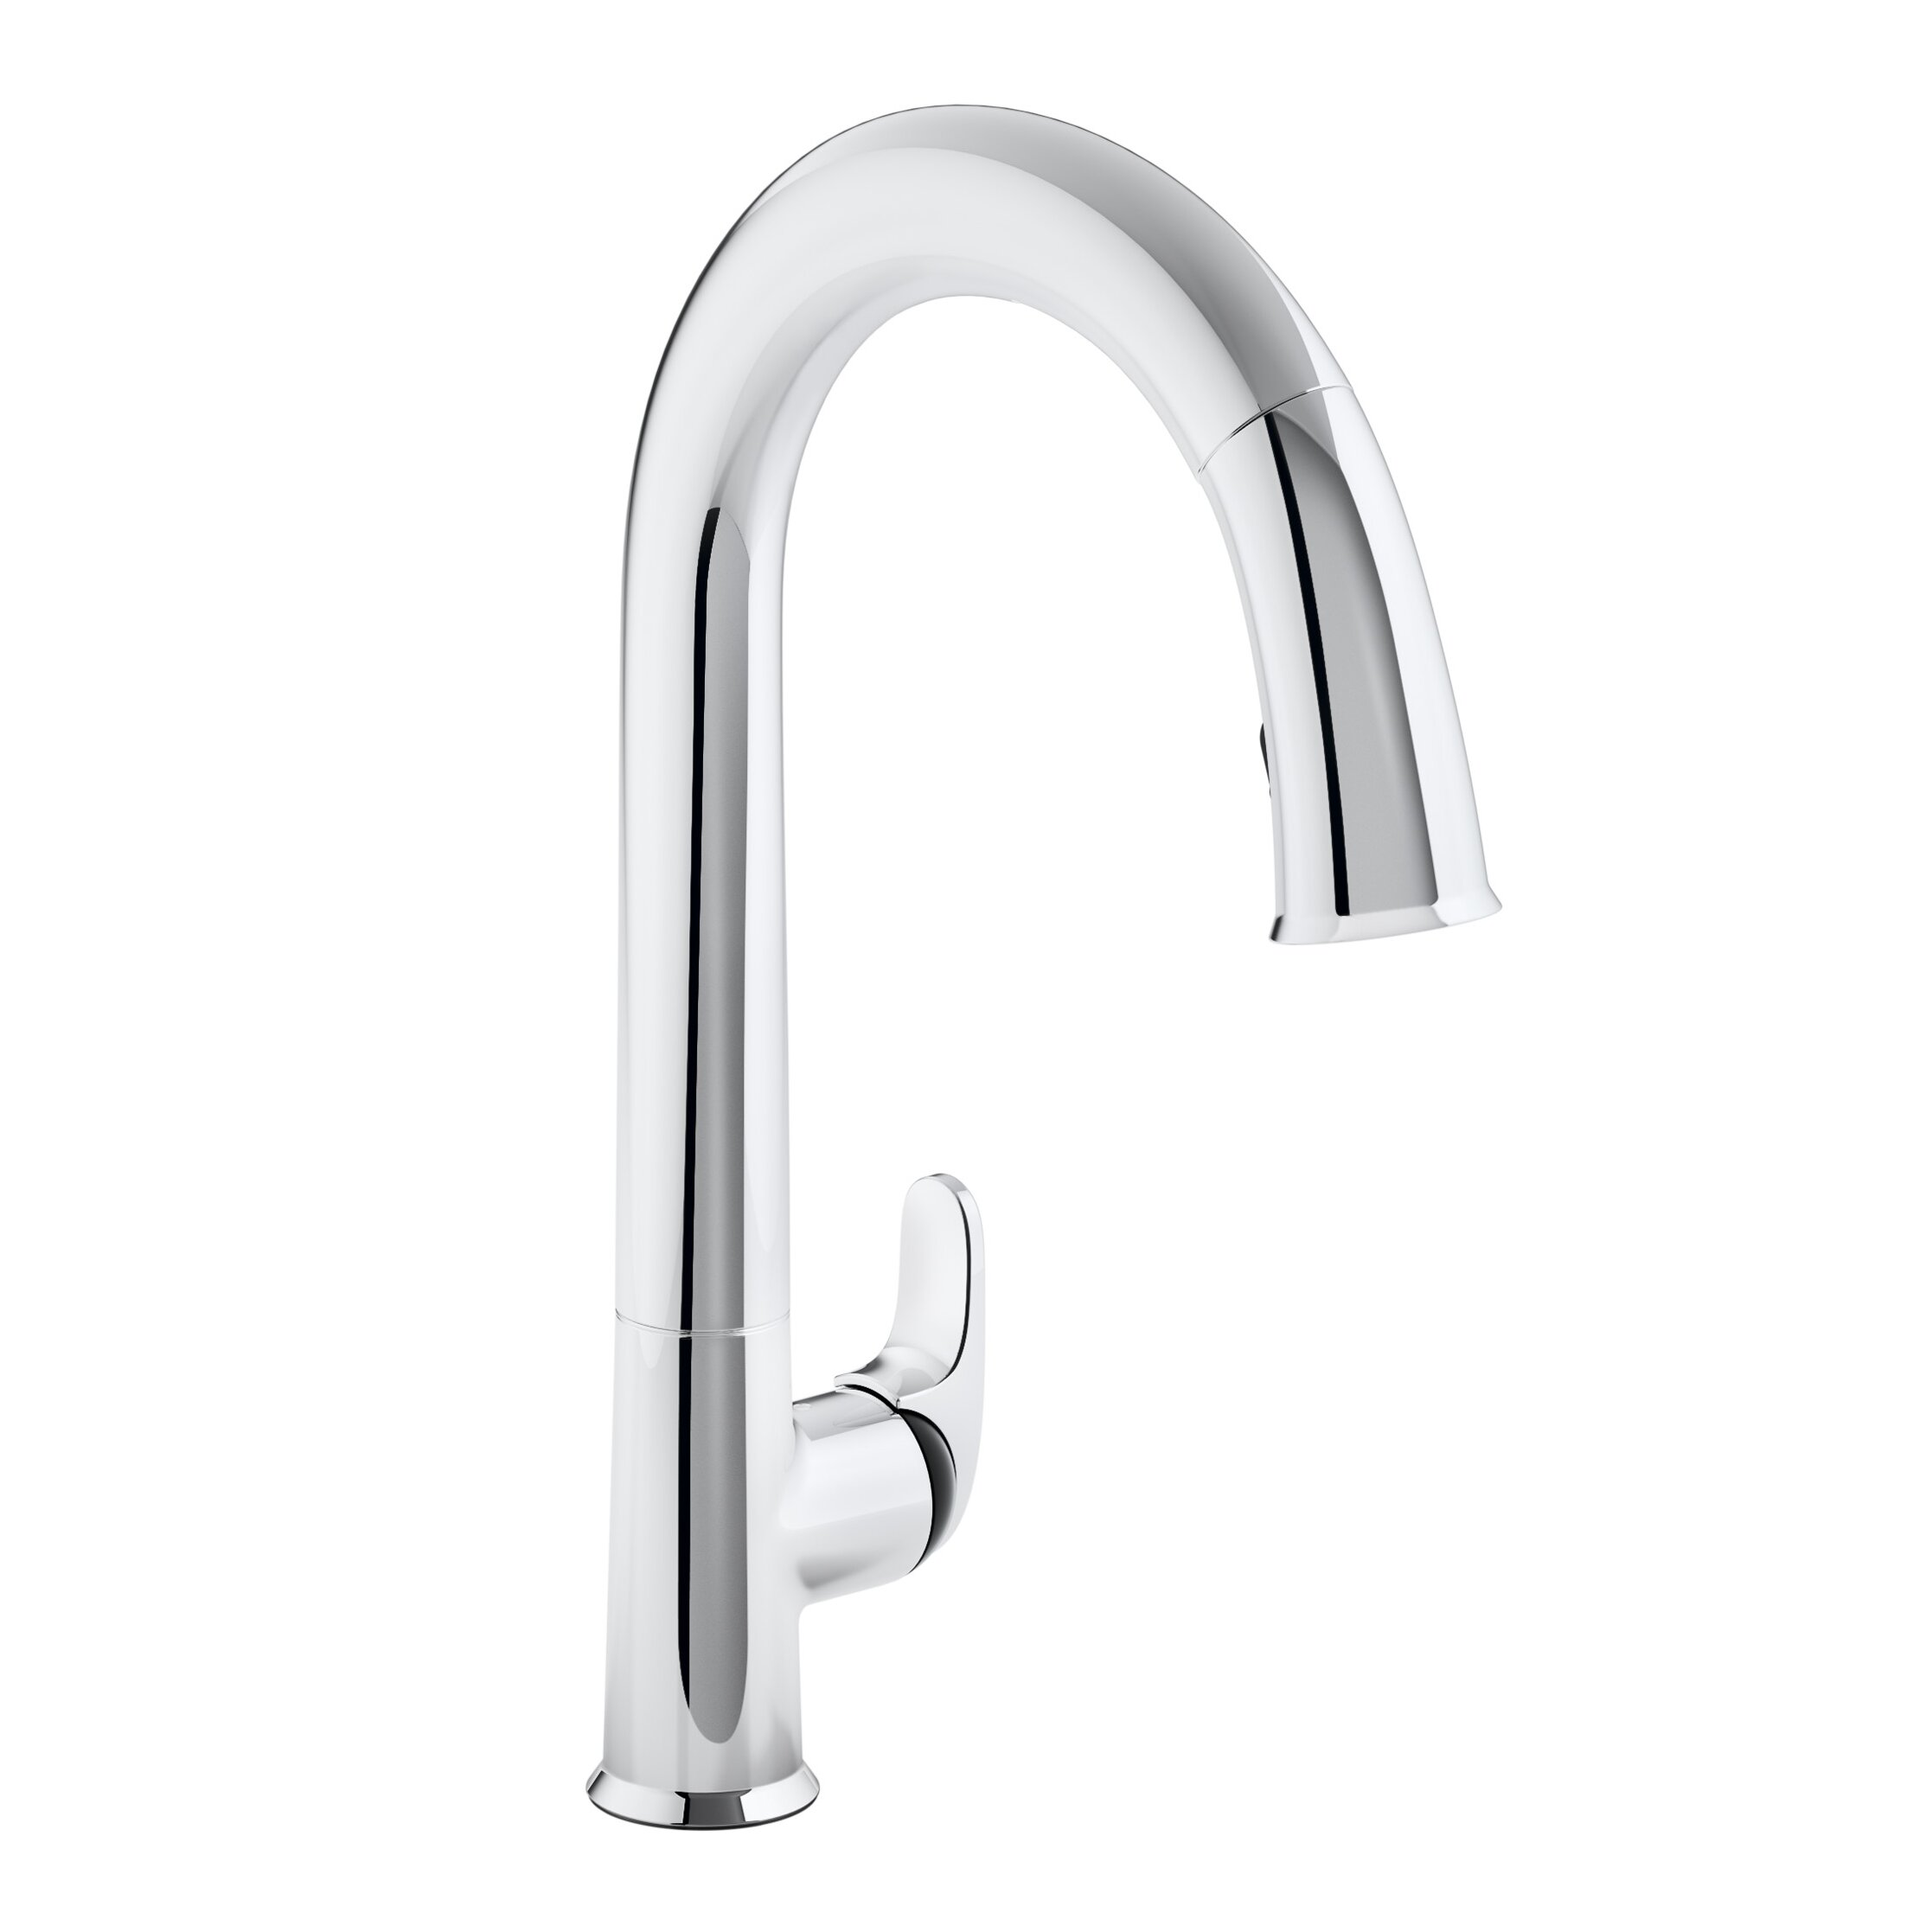 Moen Touchless Kitchen Faucet Kohler Sensate Touchless Kitchen Faucet With 15 1 2 Pull Down